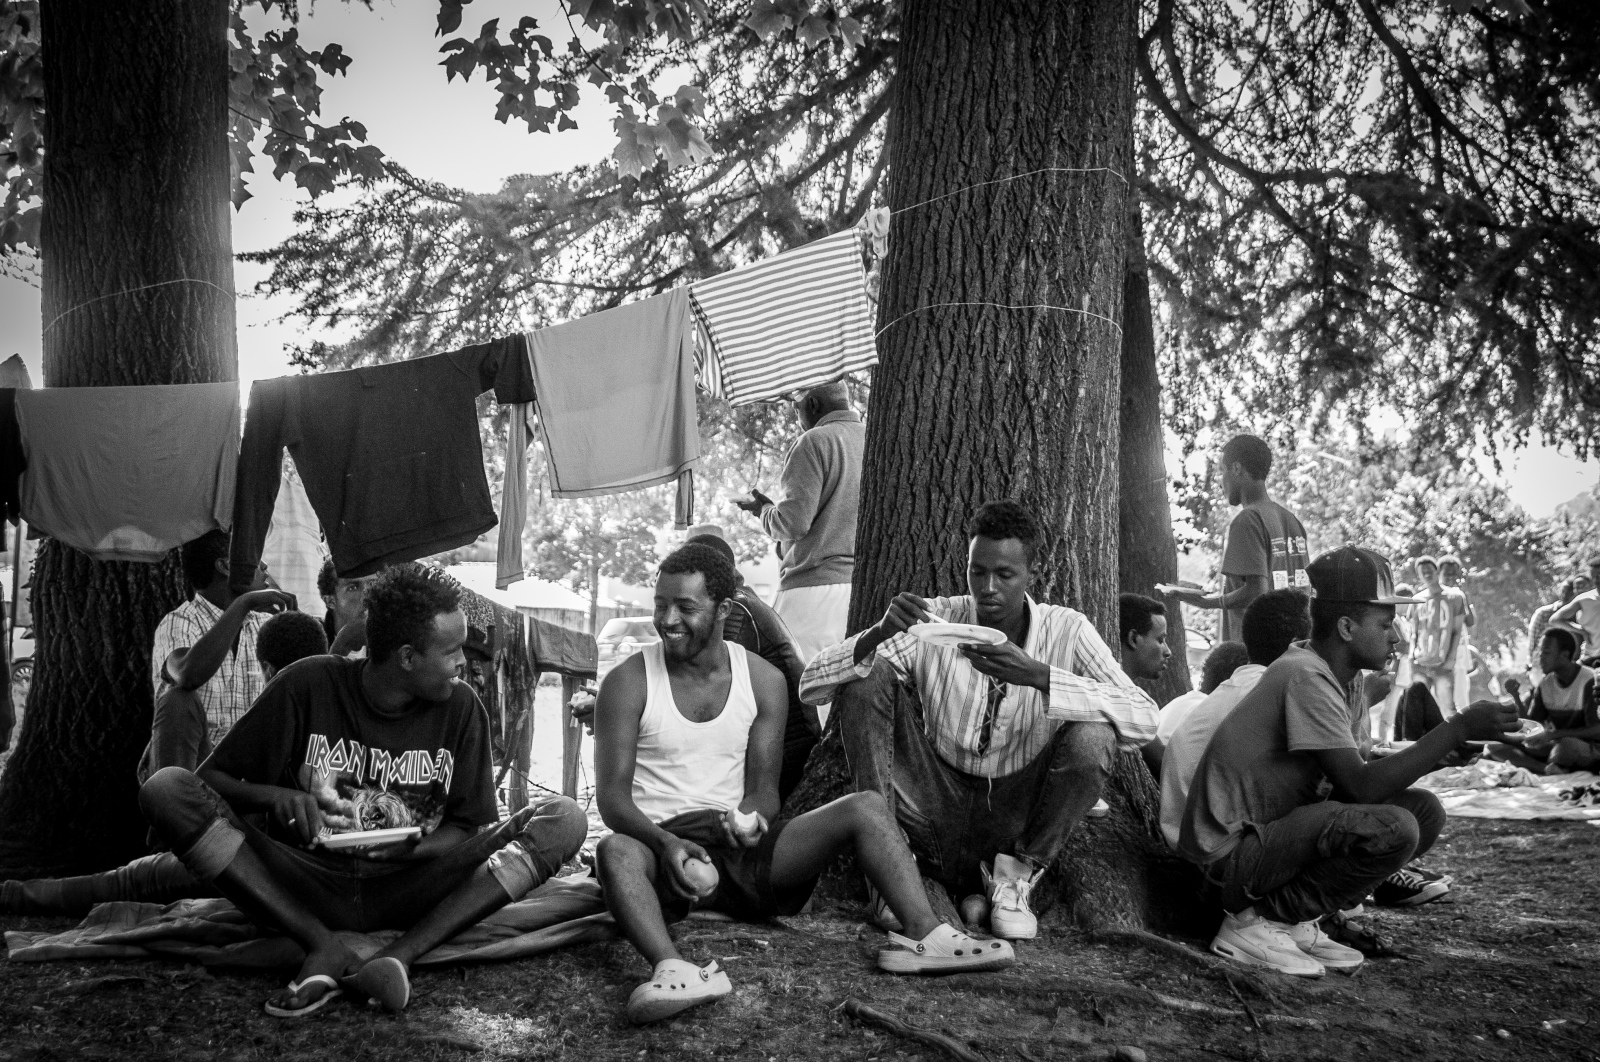 A group of migrants takes a break to dine among the tents at a temporary refugee camp.